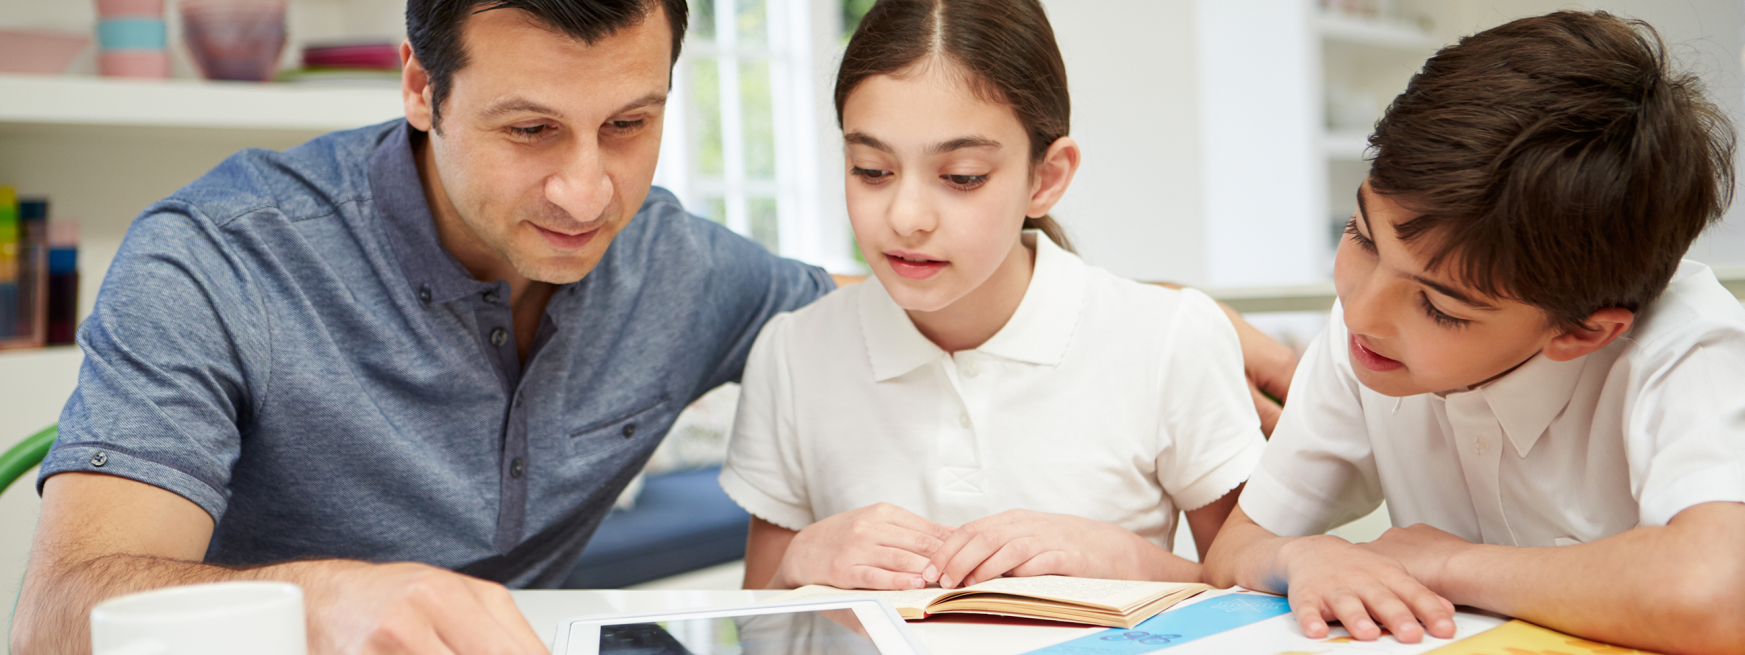 essay about disadvantages of homeschooling Home schooling essays: both school and education at home have some advantages and disadvantages please check the following on home schooling essay.